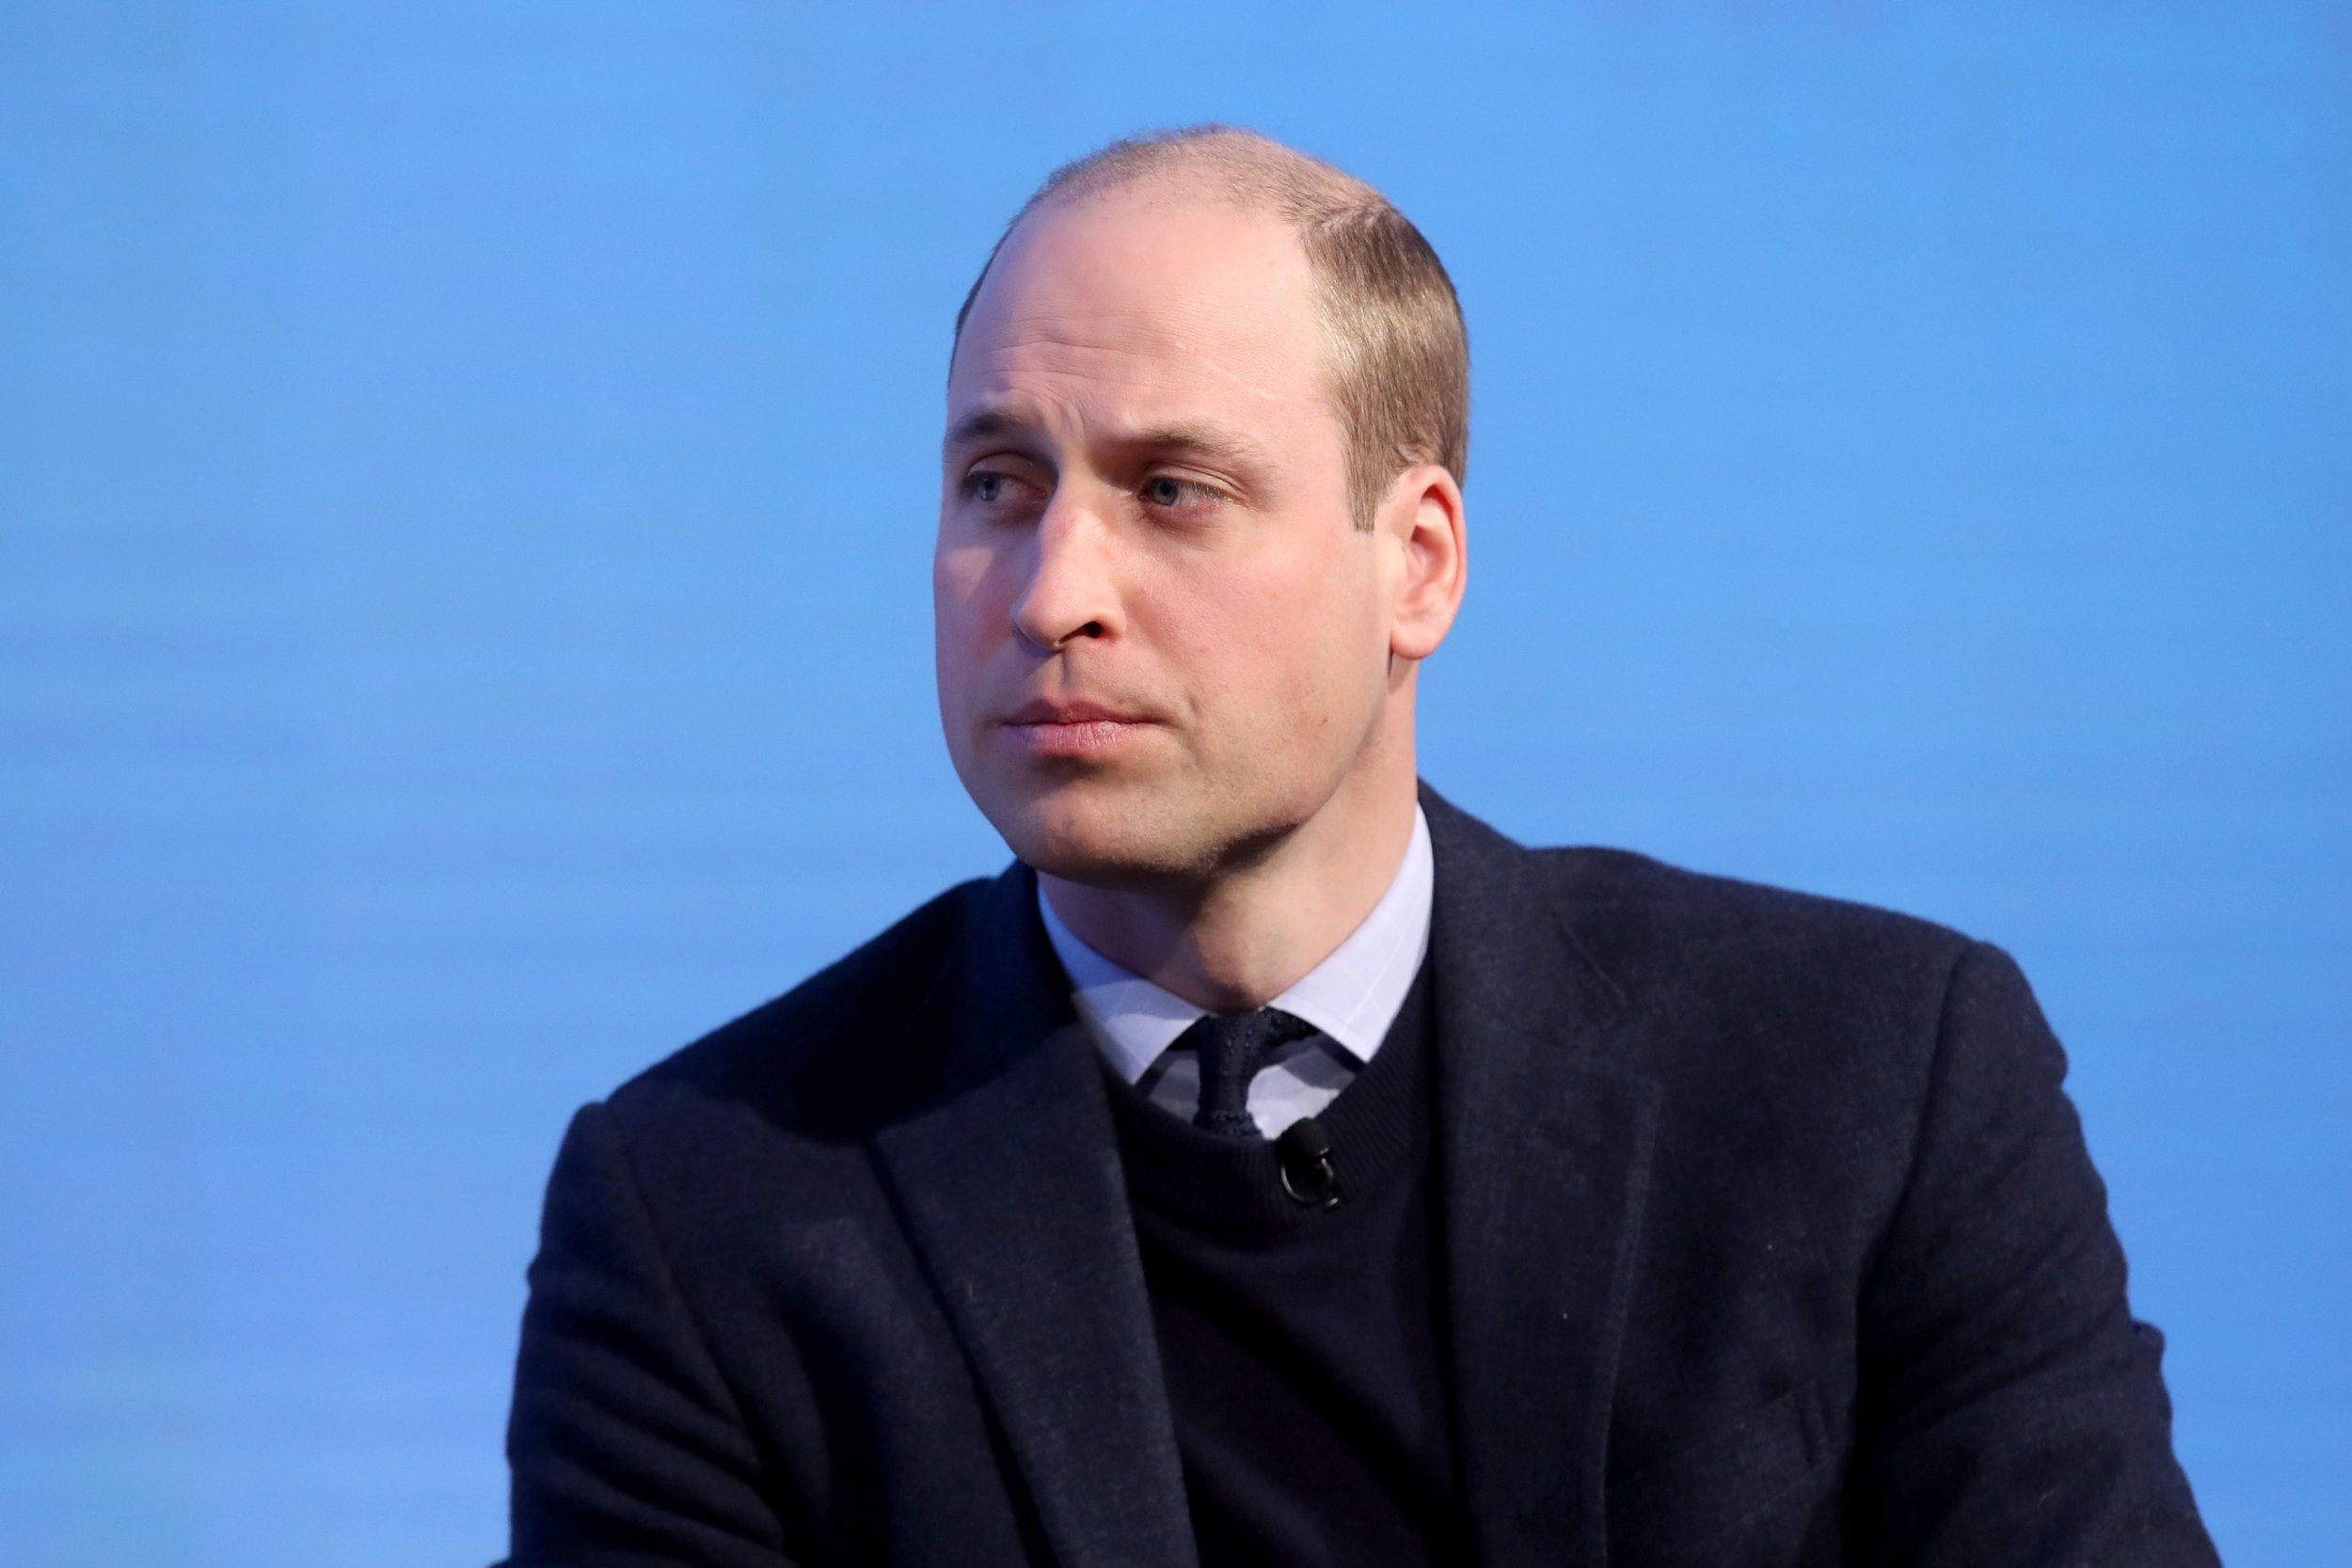 Prince William to visit Israel, Jordan and Palestine this summer